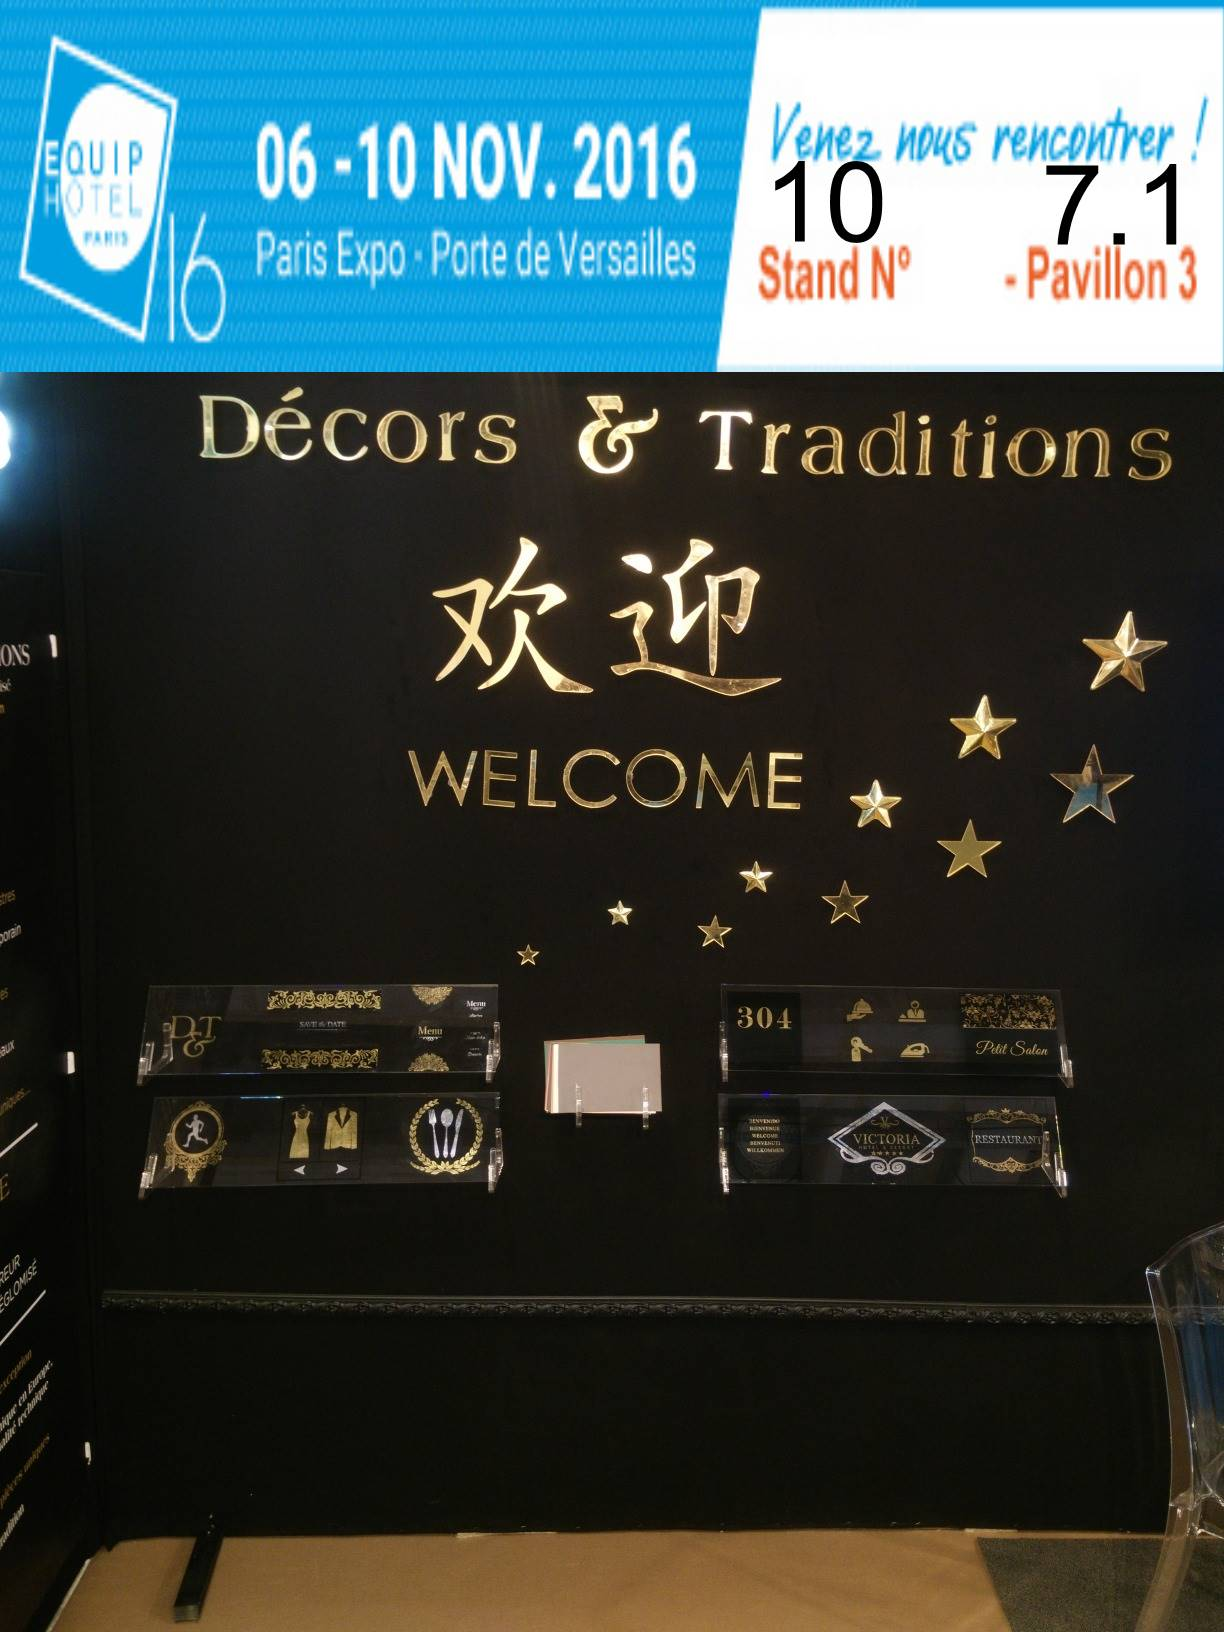 dcors et traditions